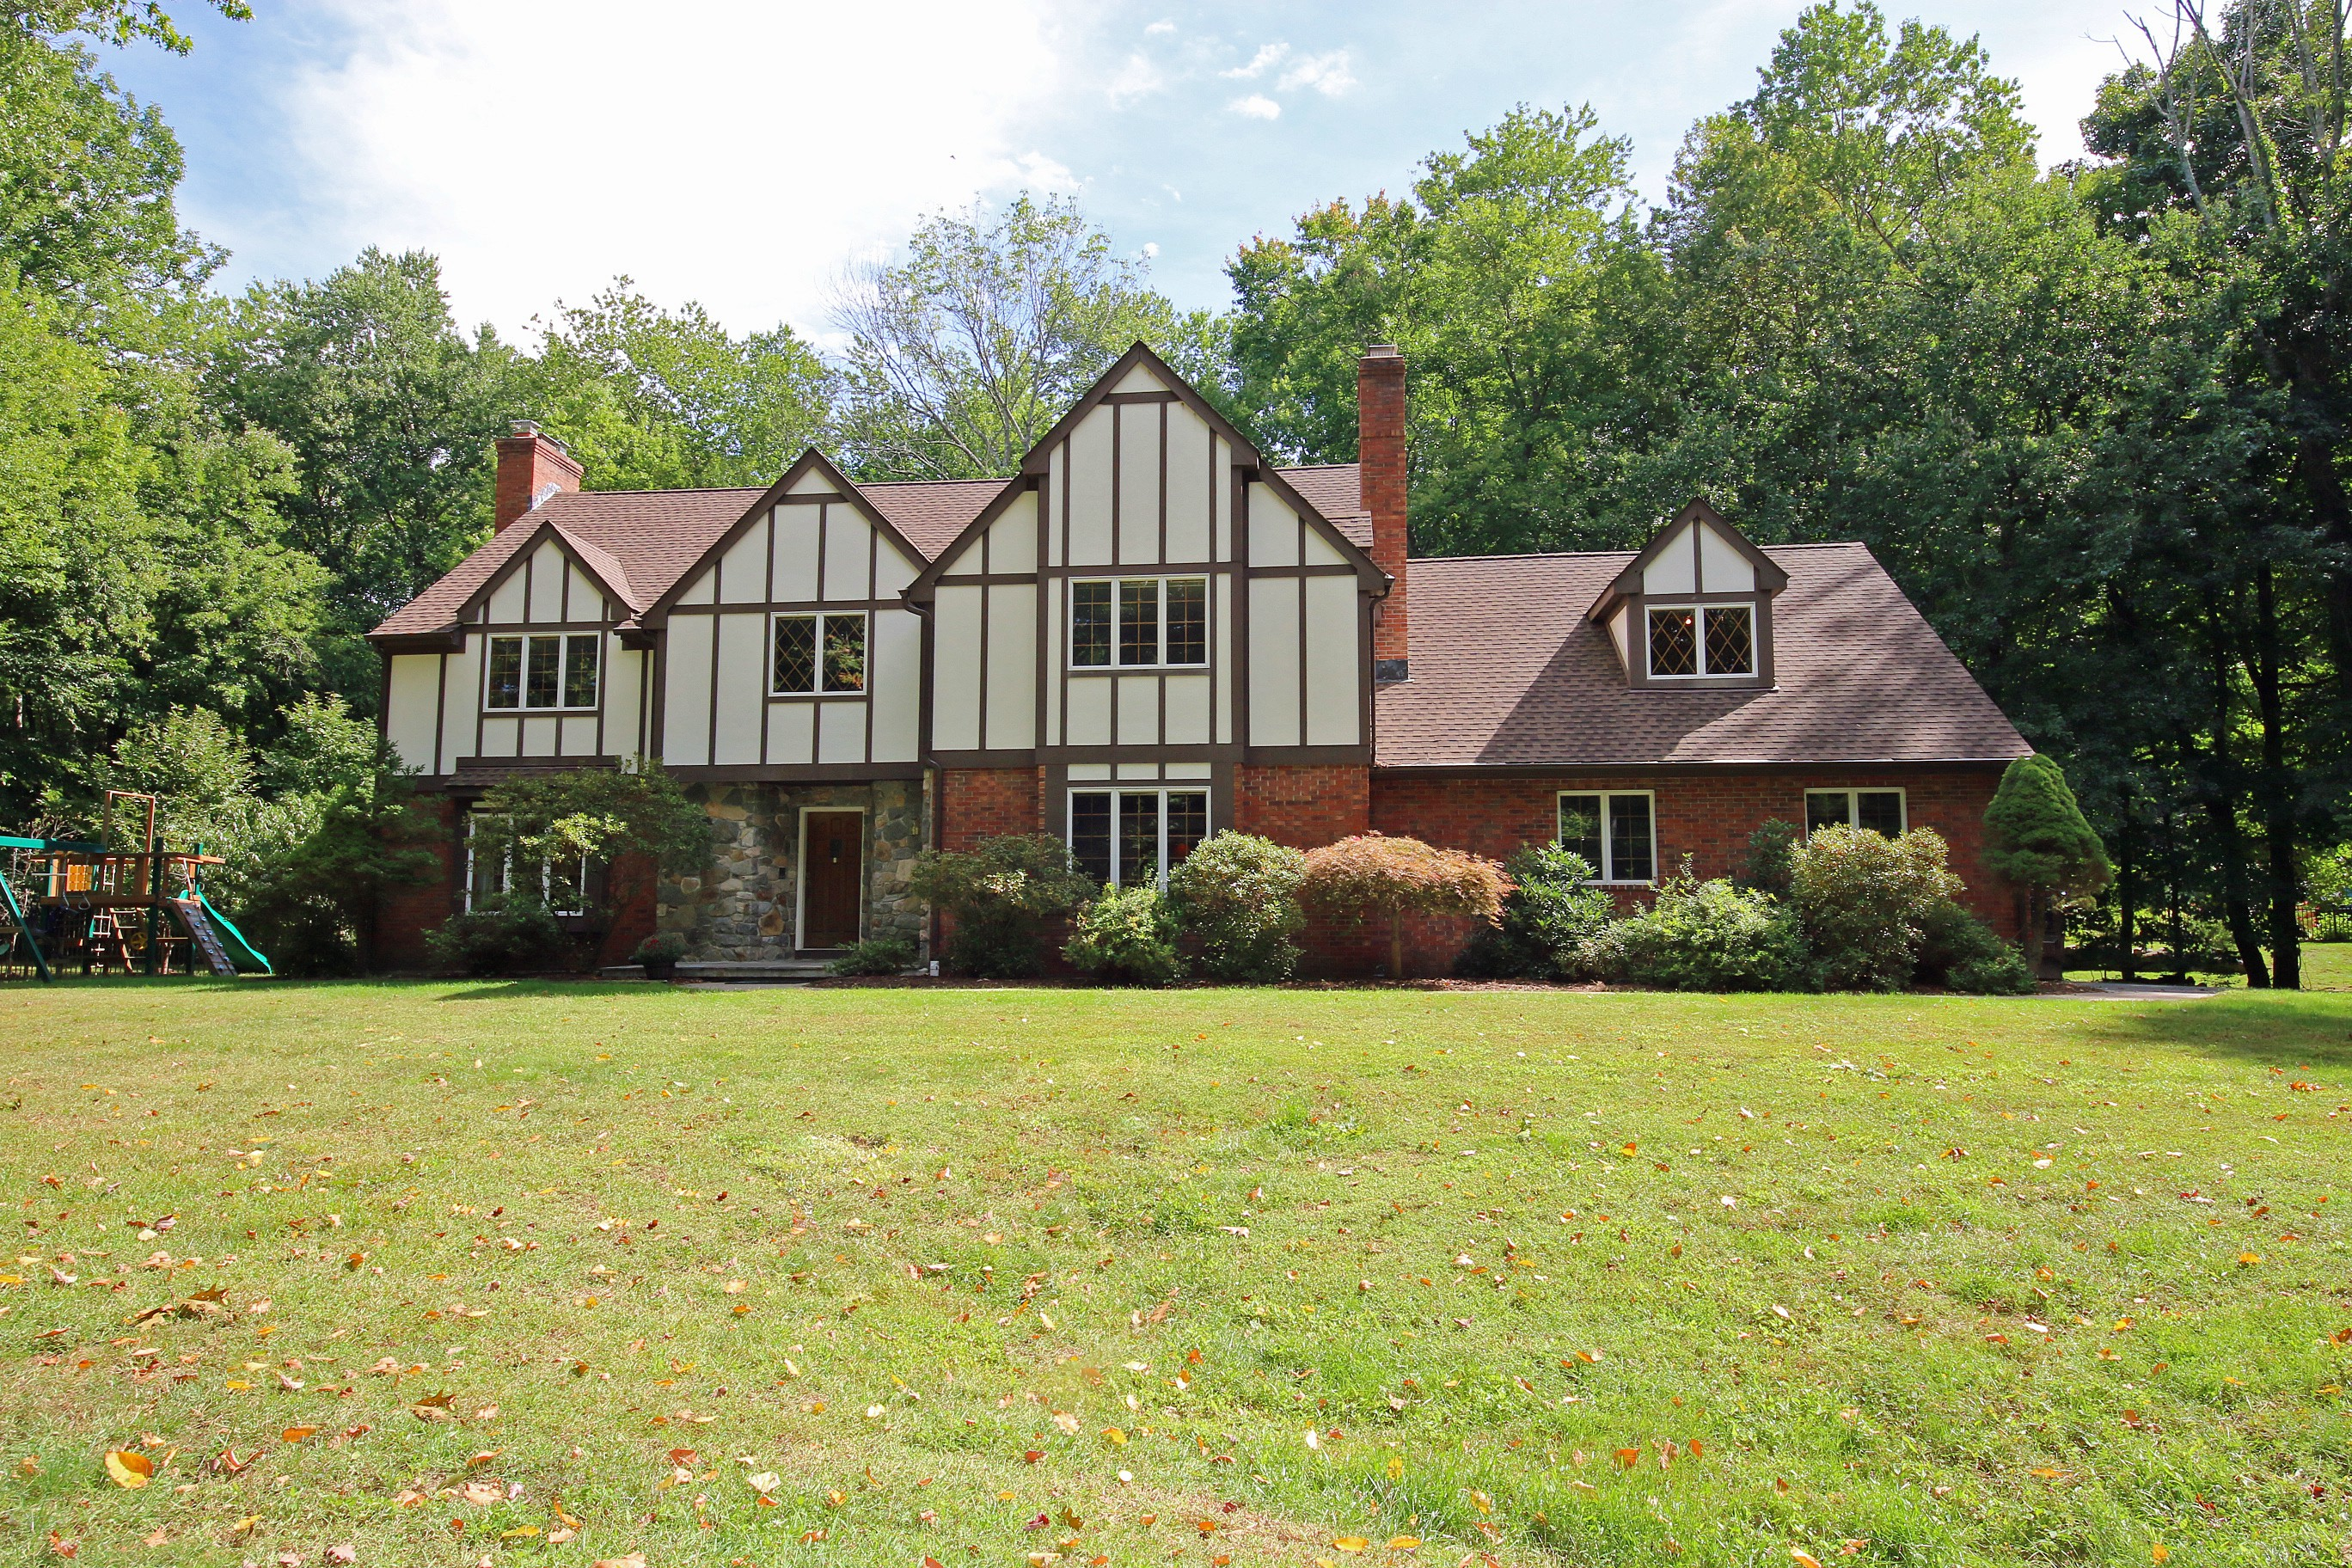 Single Family Home for Sale at Stately Brick Tudor Style Home 3 Manor Road Brookfield, Connecticut 06804 United States